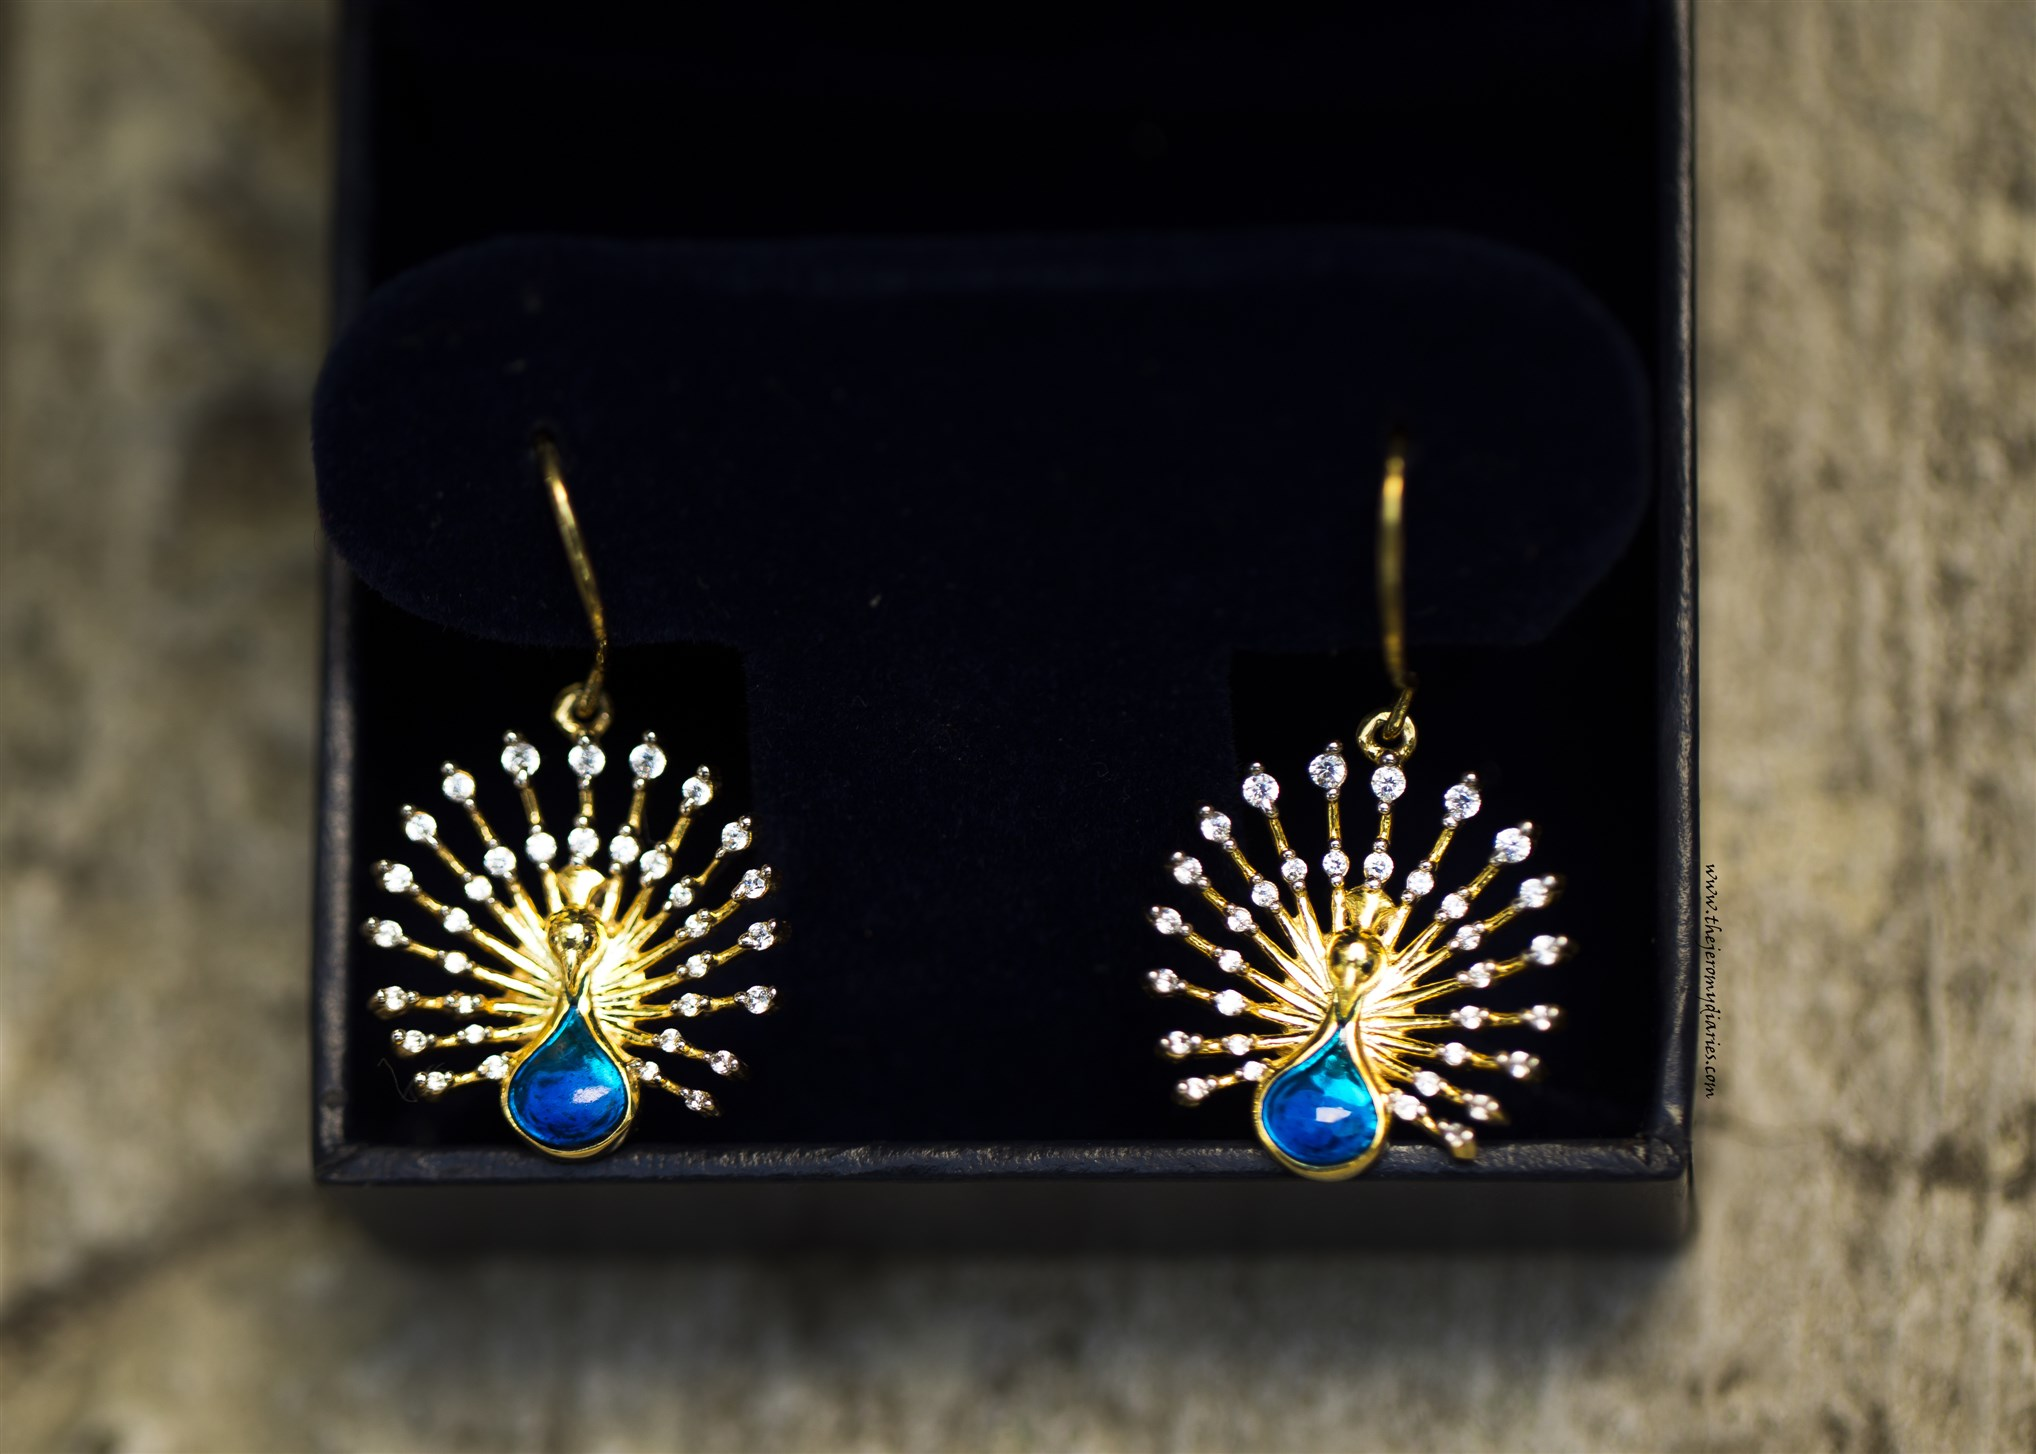 bluestone royal feather earrings peacock collection (2036 x 1454)